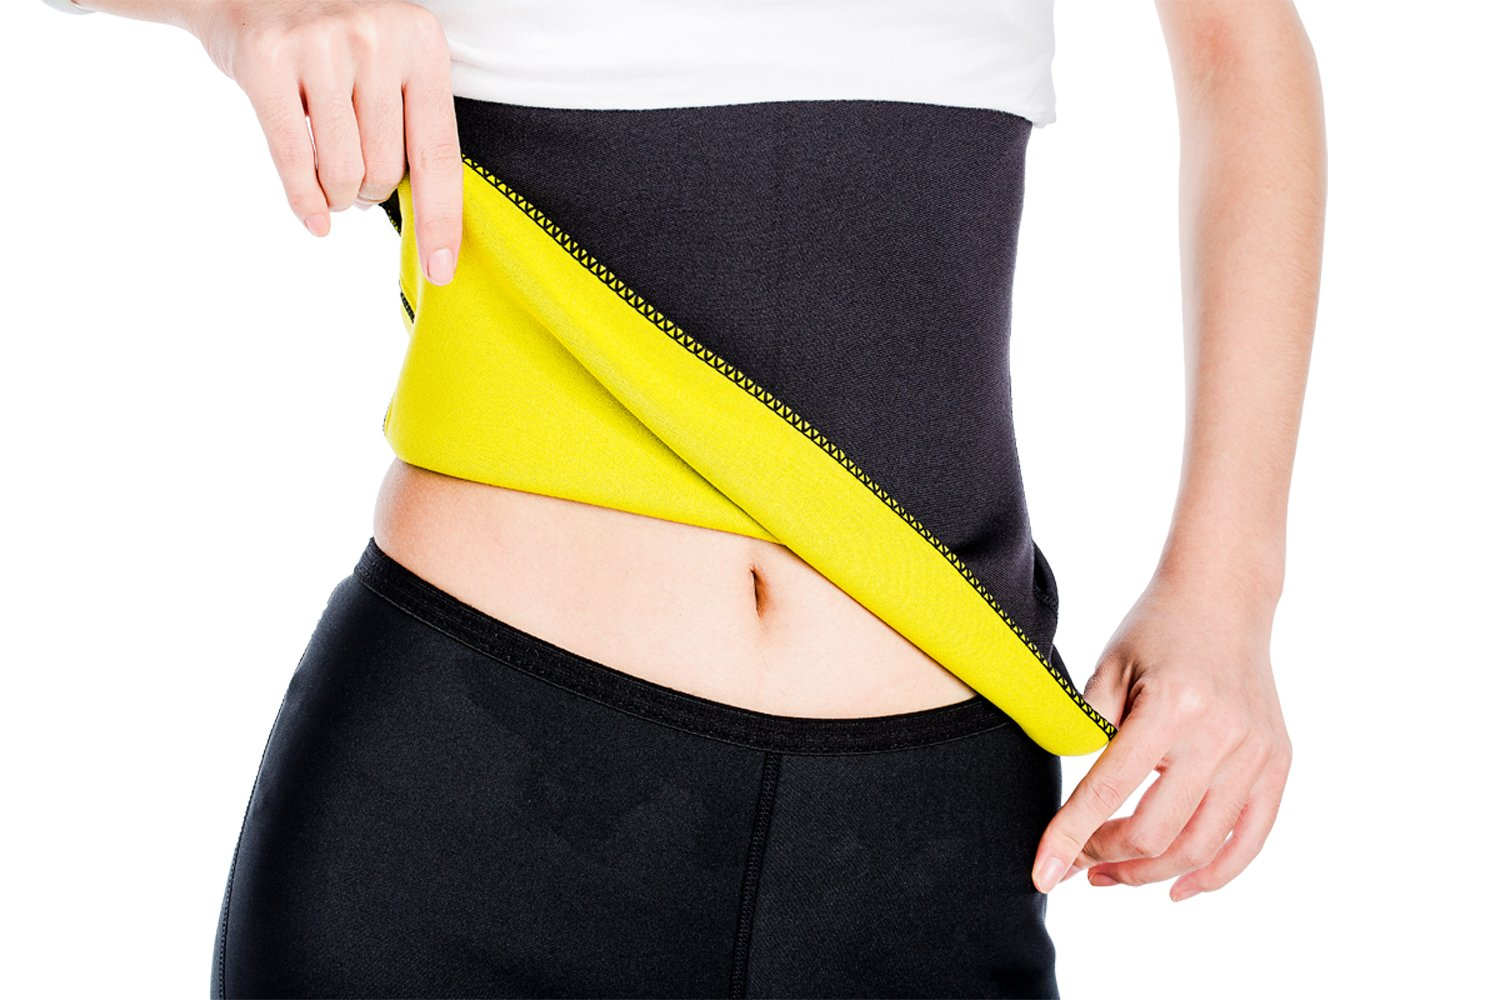 ValentinA Hot Thermo Sweat Neoprene Shapers Slimming Belt Waist Cincher Girdle For Weight Loss Women and Men, Small